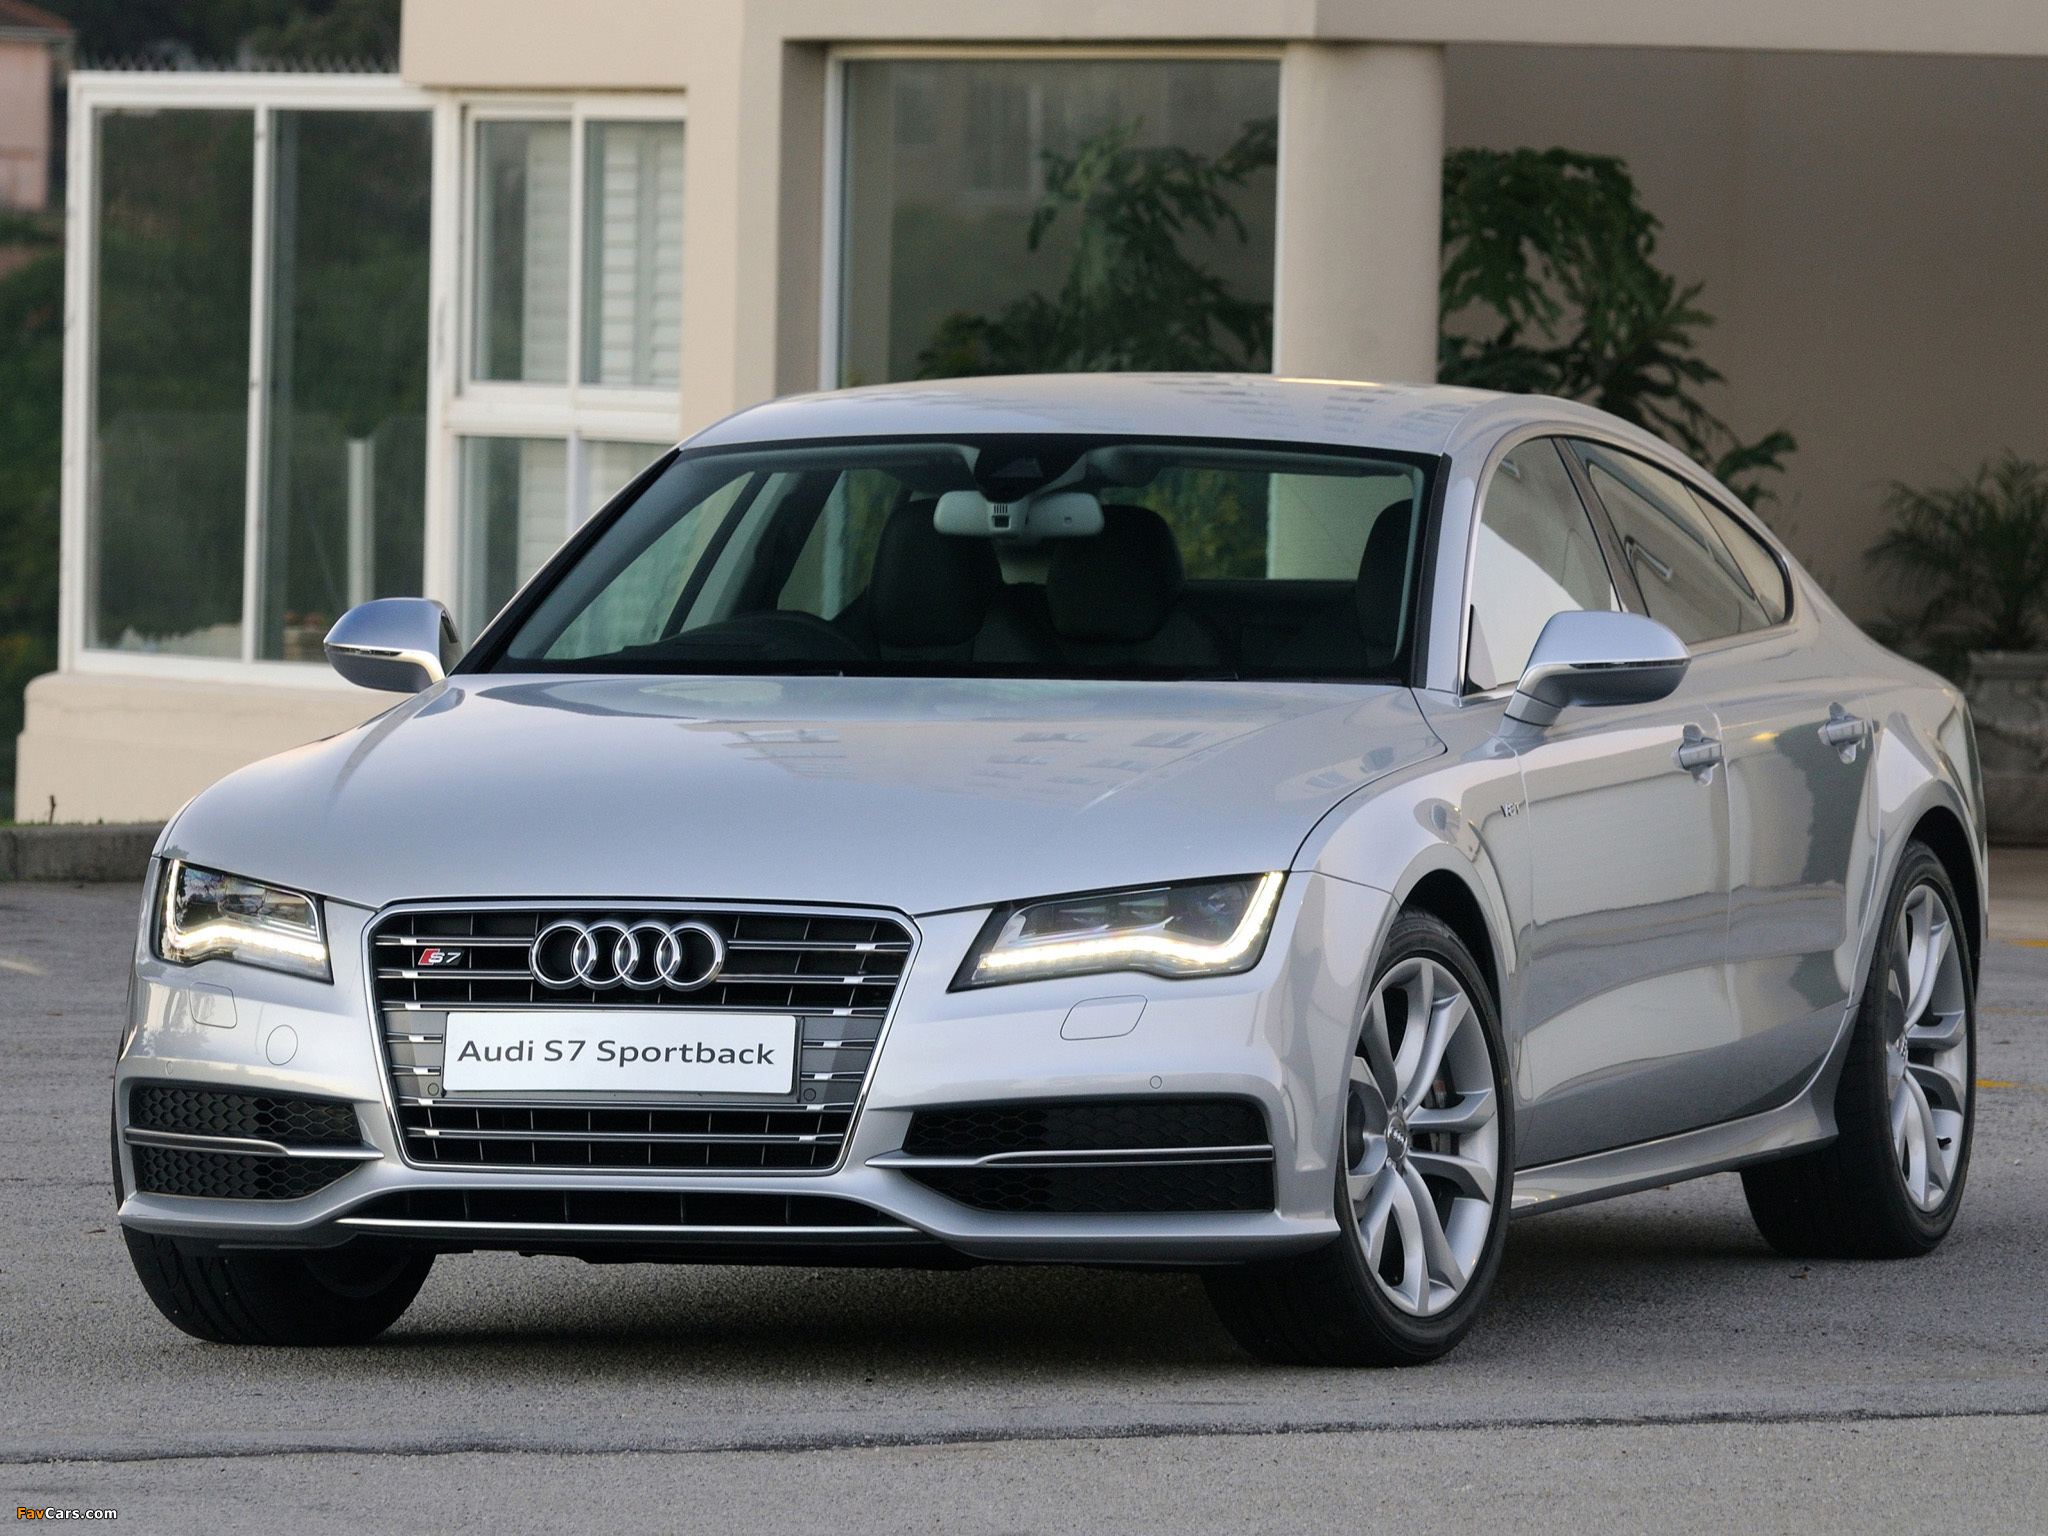 audi s7 sportback za spec 2012 images 2048x1536. Black Bedroom Furniture Sets. Home Design Ideas